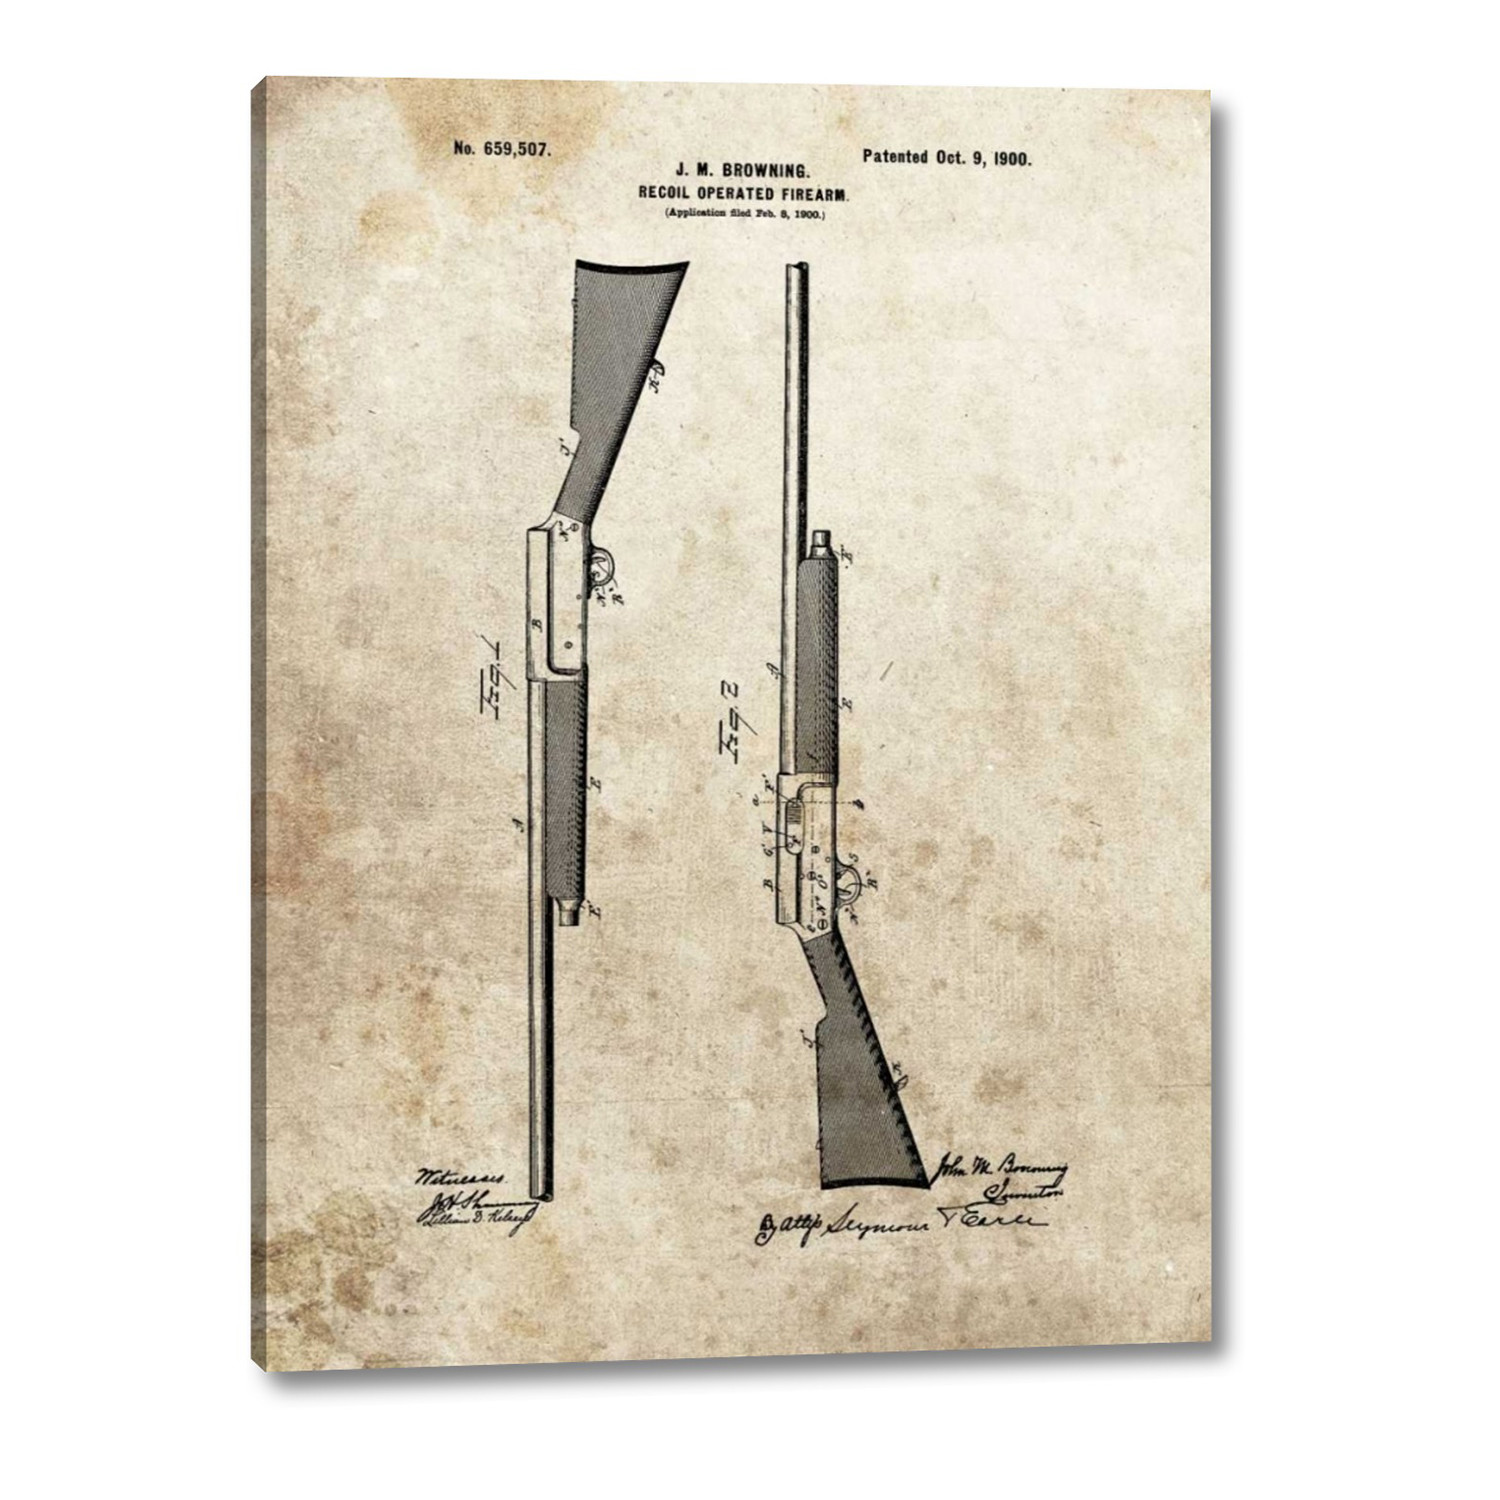 Recoil Operated Firearm 1900 Dan Sproul 18 H X 24 W X 1 25 D Printart Touch Of Modern